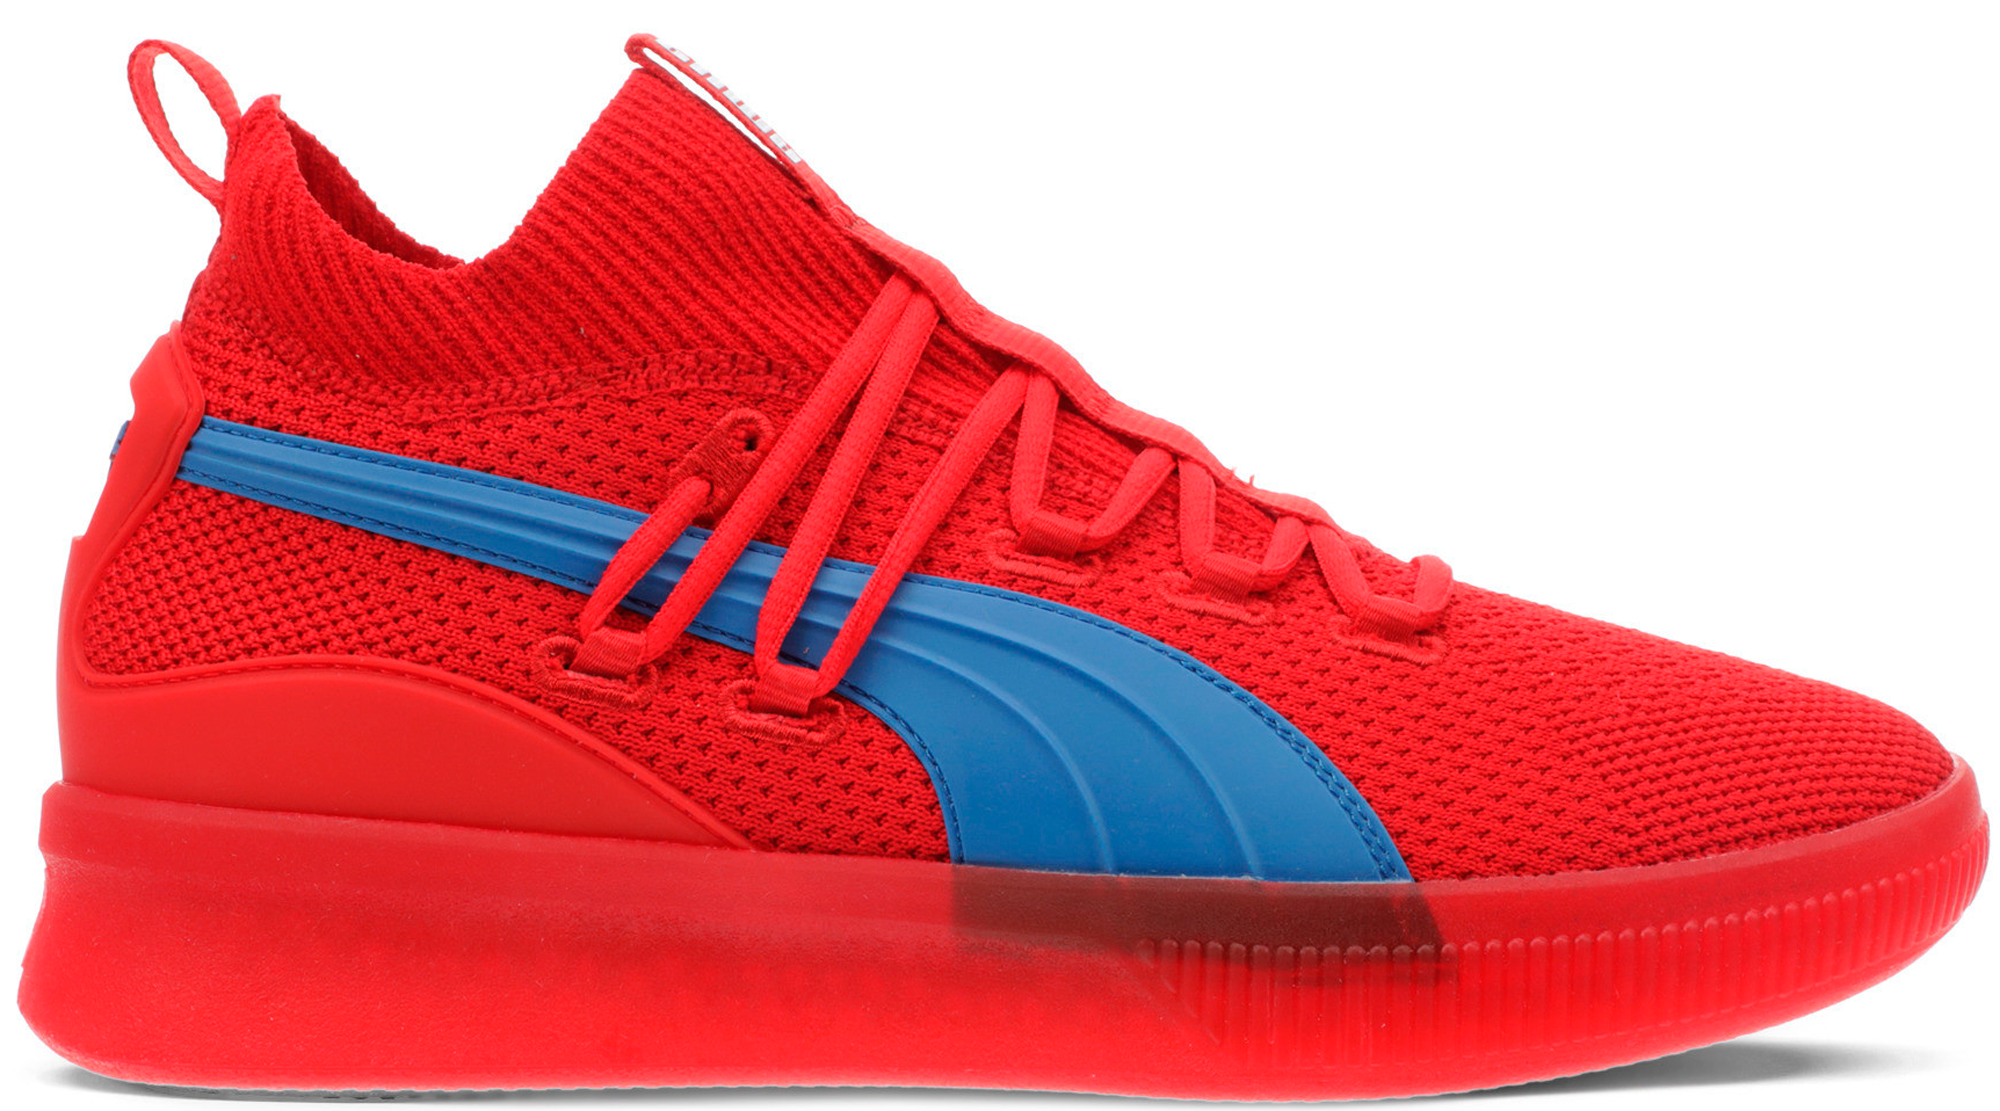 huge discount bc61a b2e64 Clyde Court City Pack Los Angeles Clippers in High Risk Red/Strong Blue